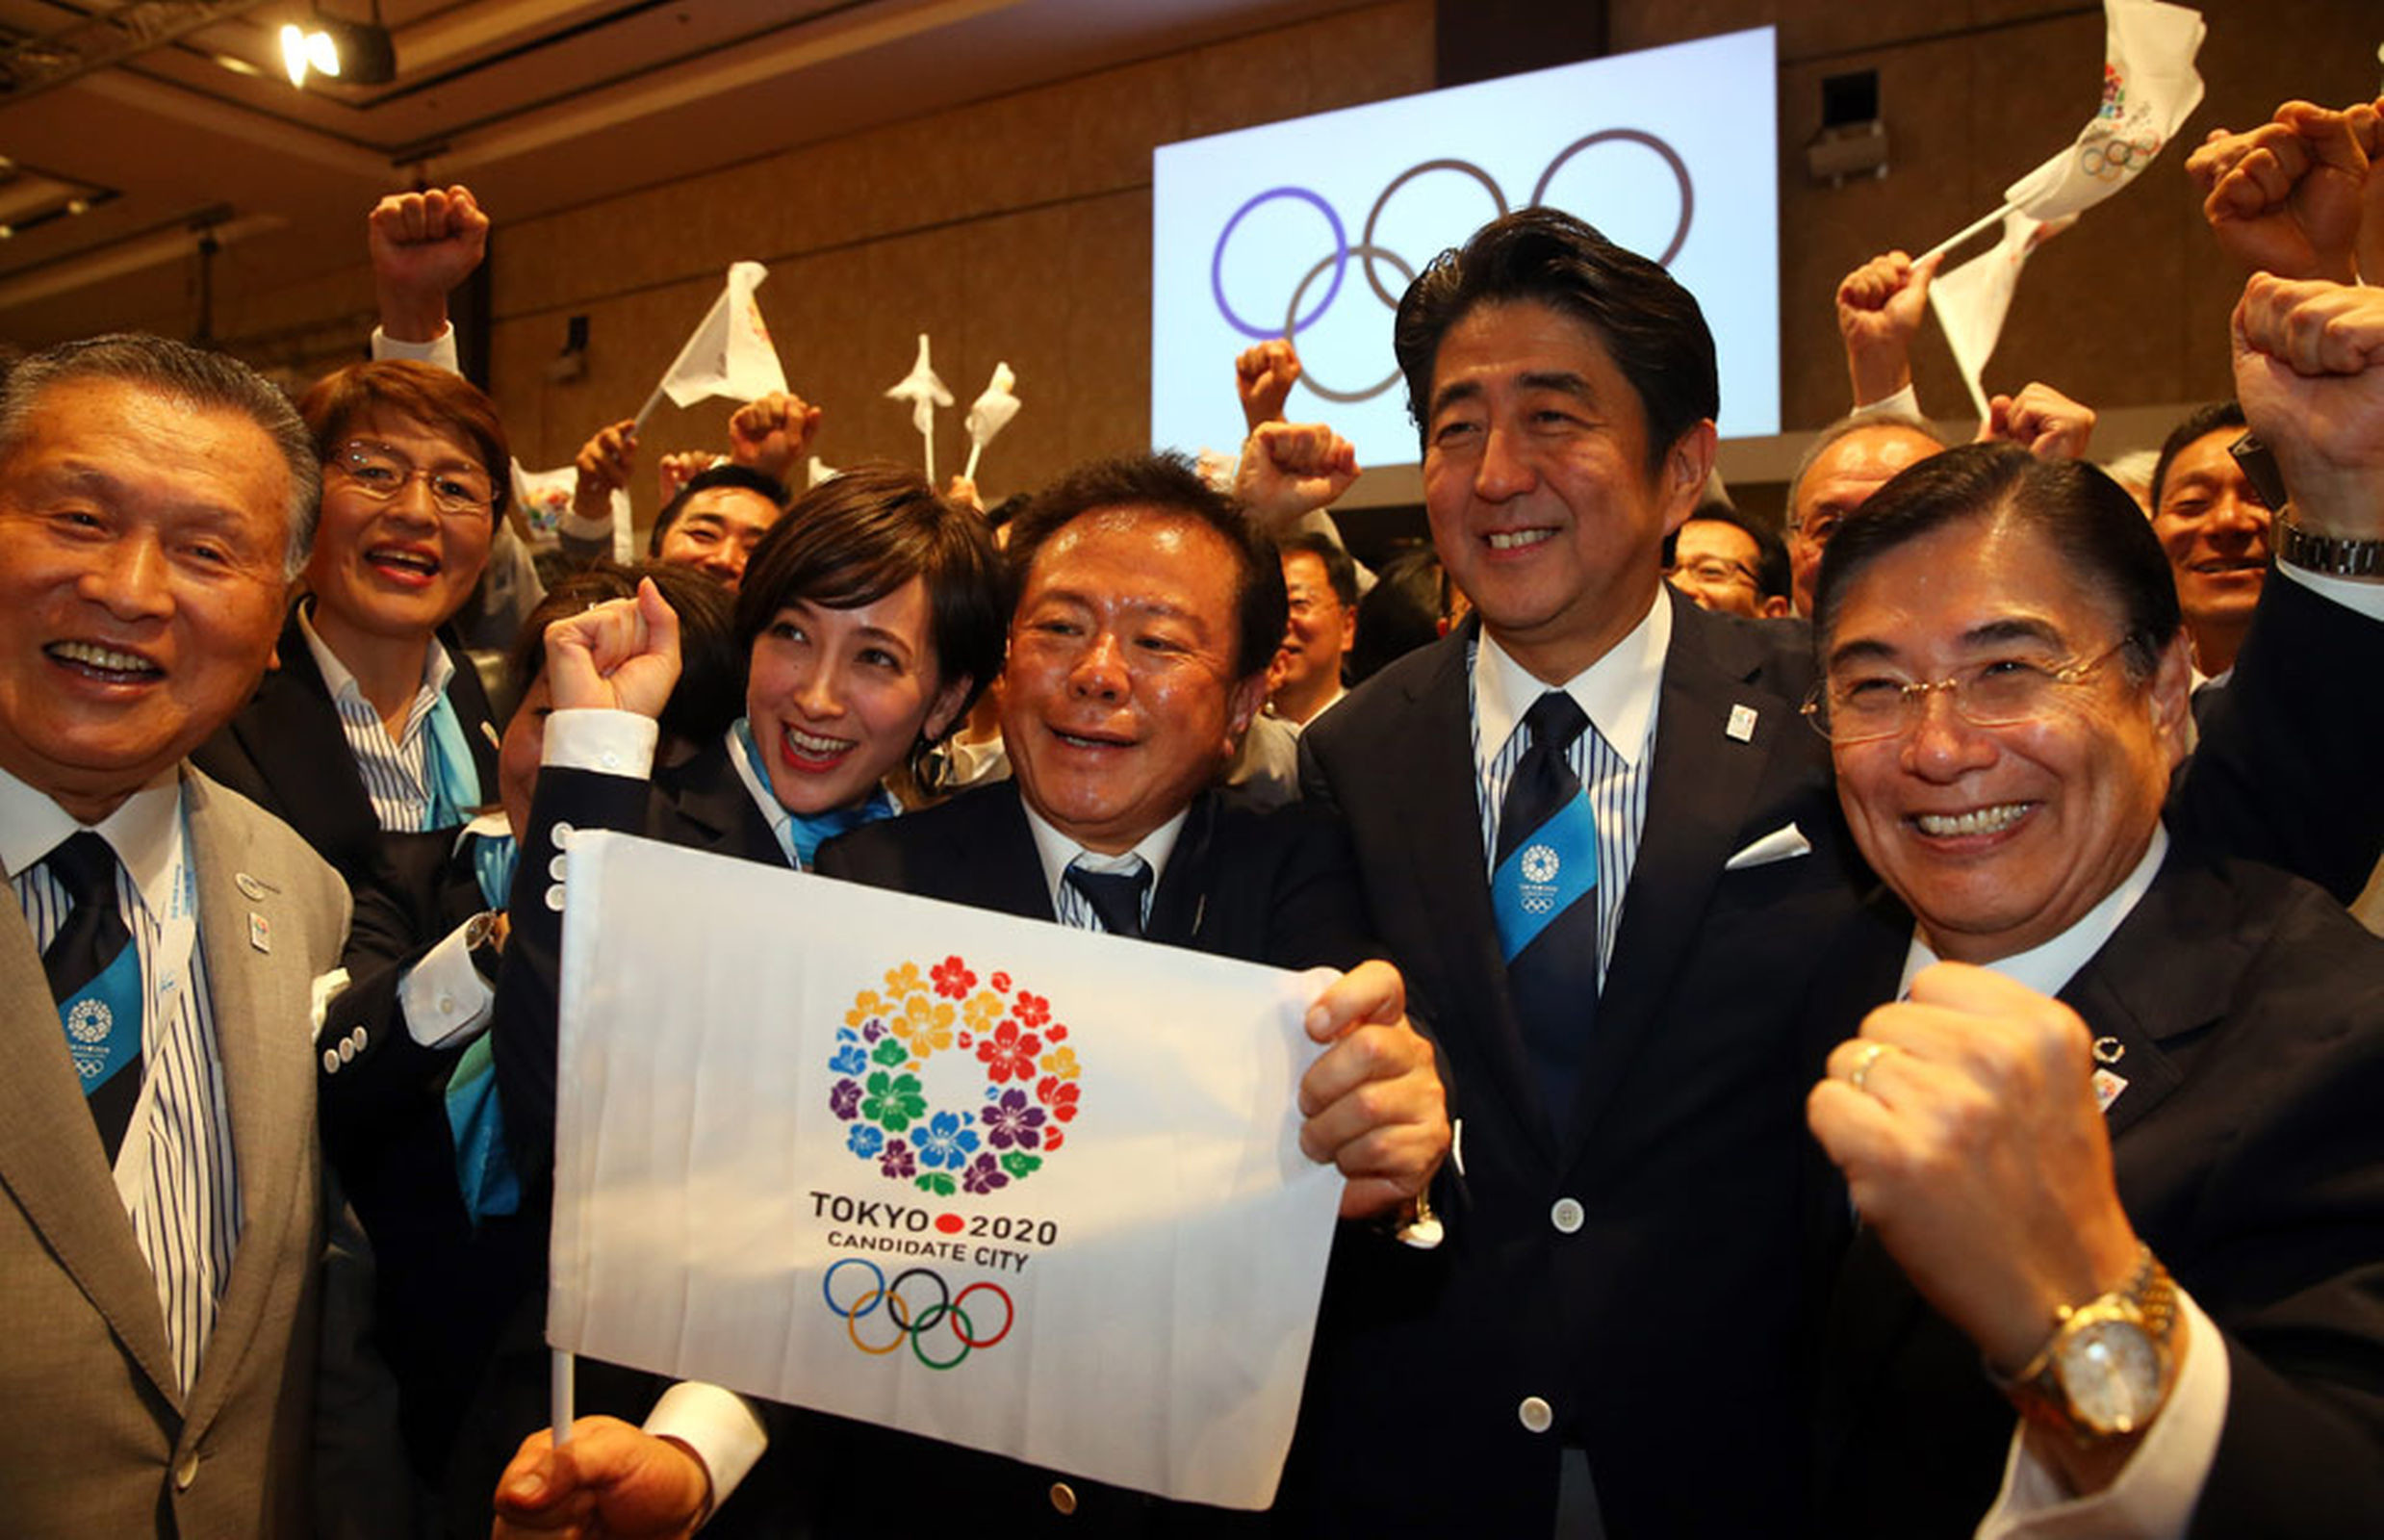 The  Tokyo 2020 Olympics starts in 897 days